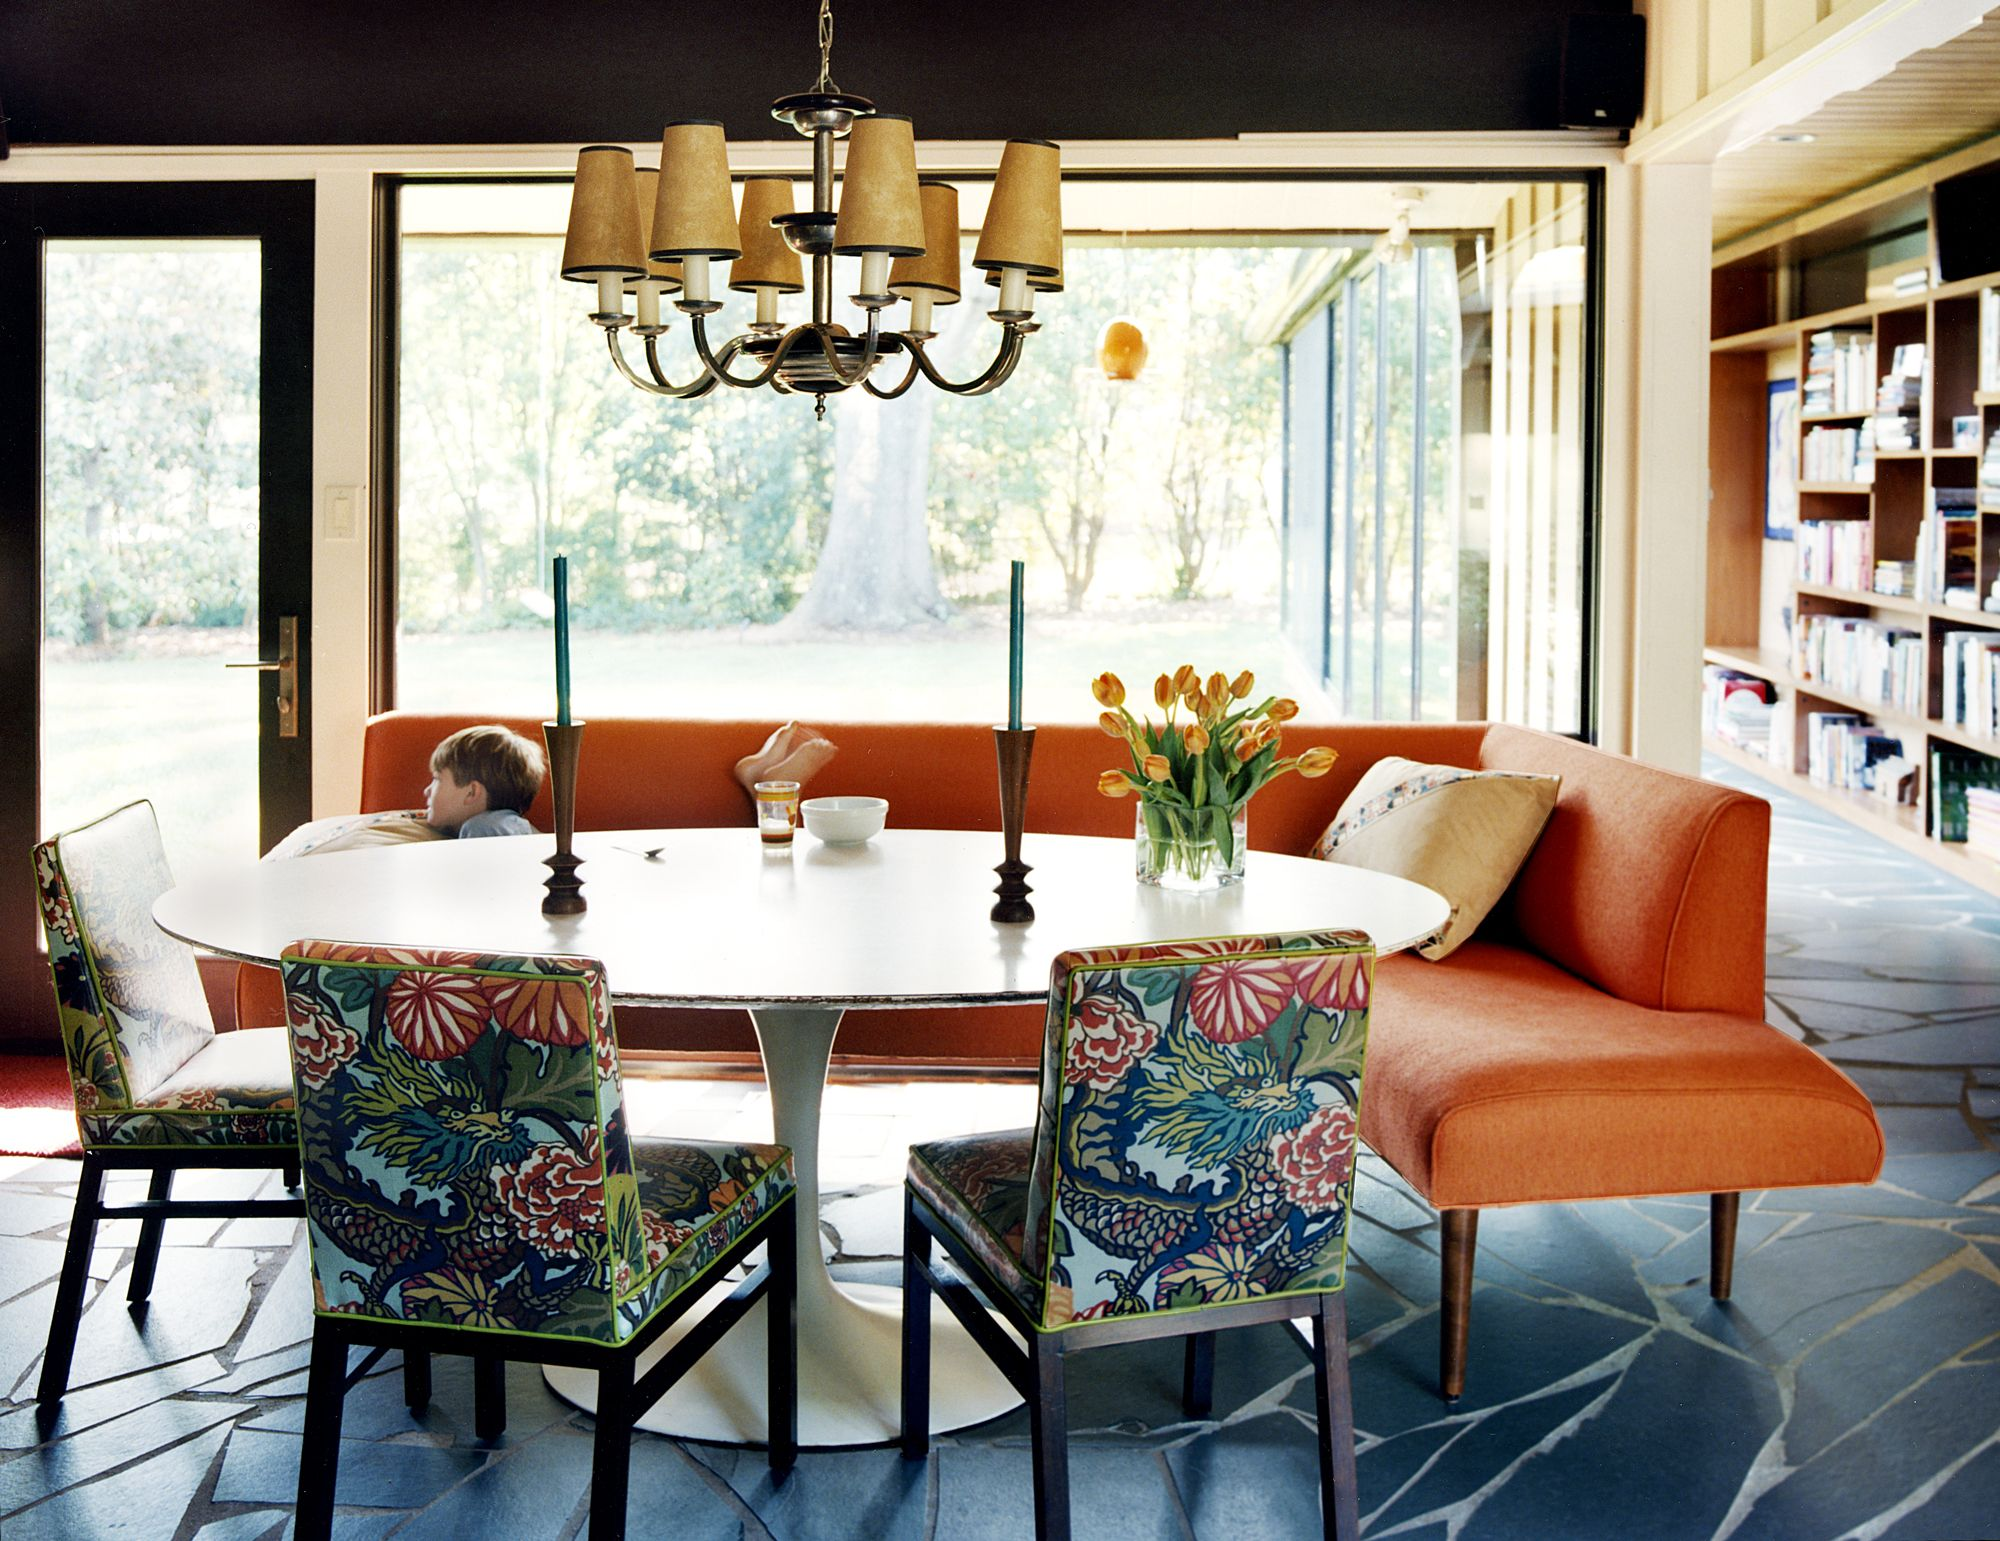 Dining room table with upholstered bench  Chairs upholstered in Schumacherus Chiang Mai Dragon pattern